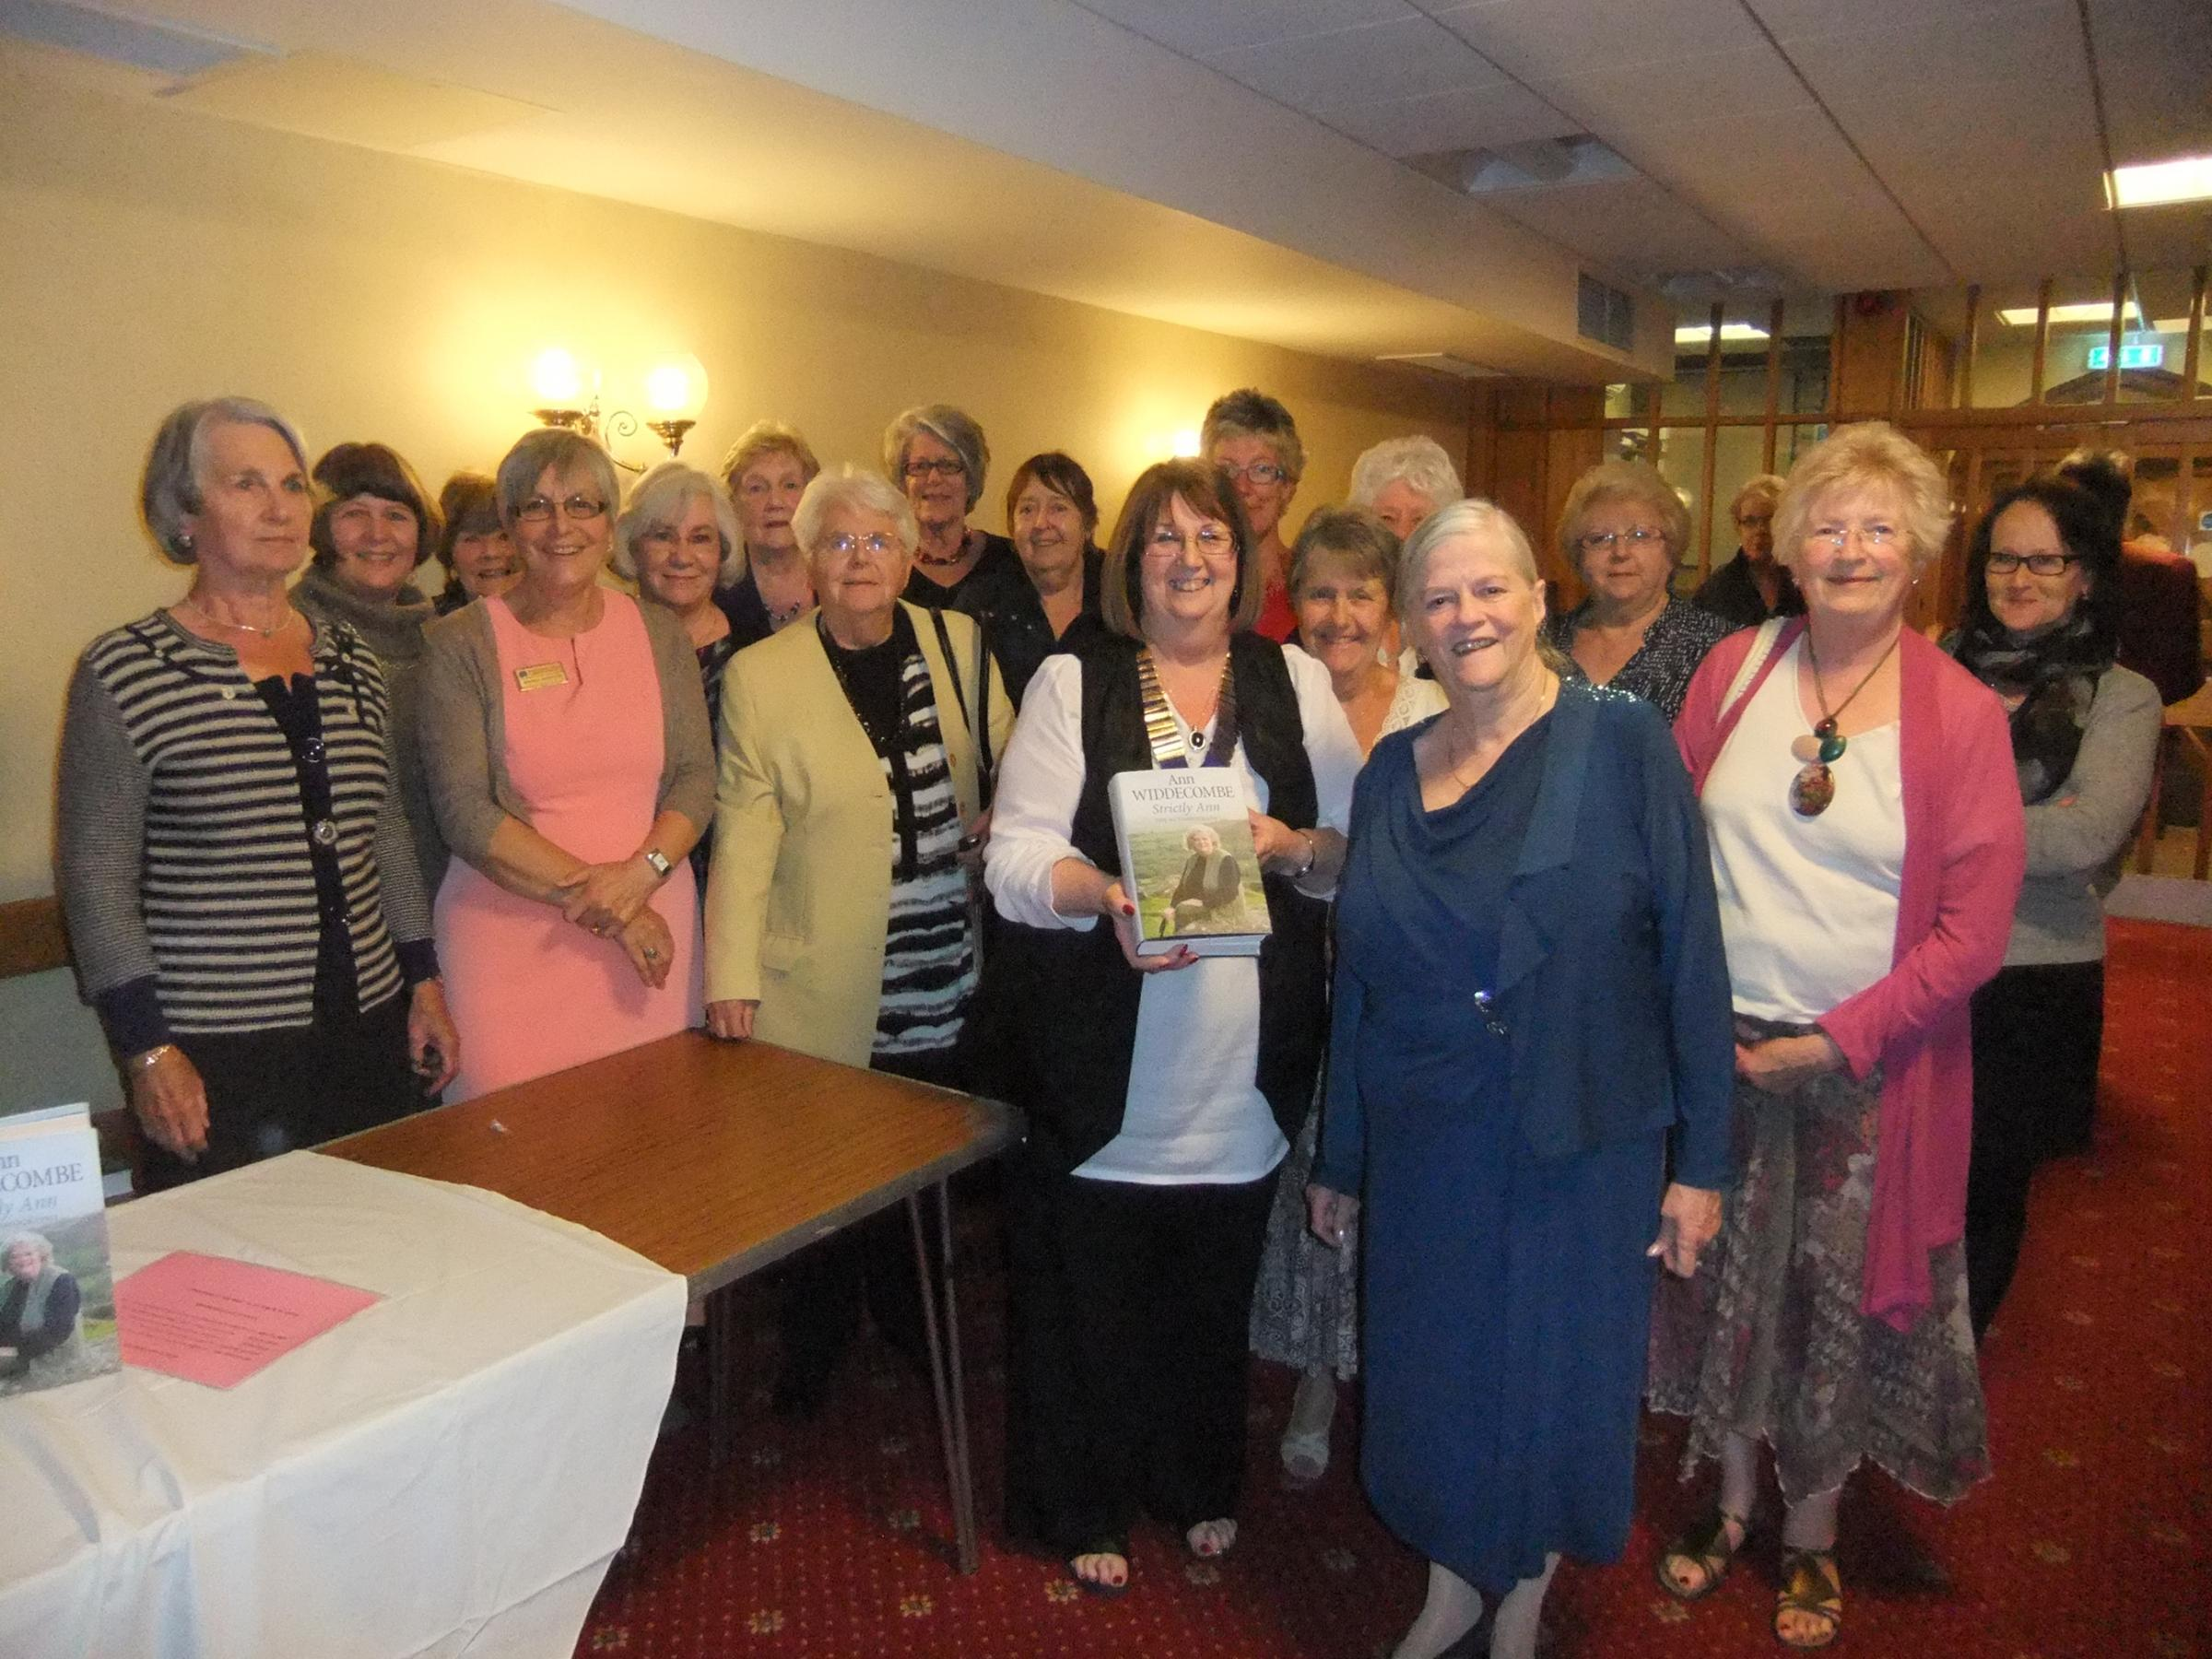 Ann Widdecombe talks politics, Strictly and panto at charity talk in Chipping Sodbury